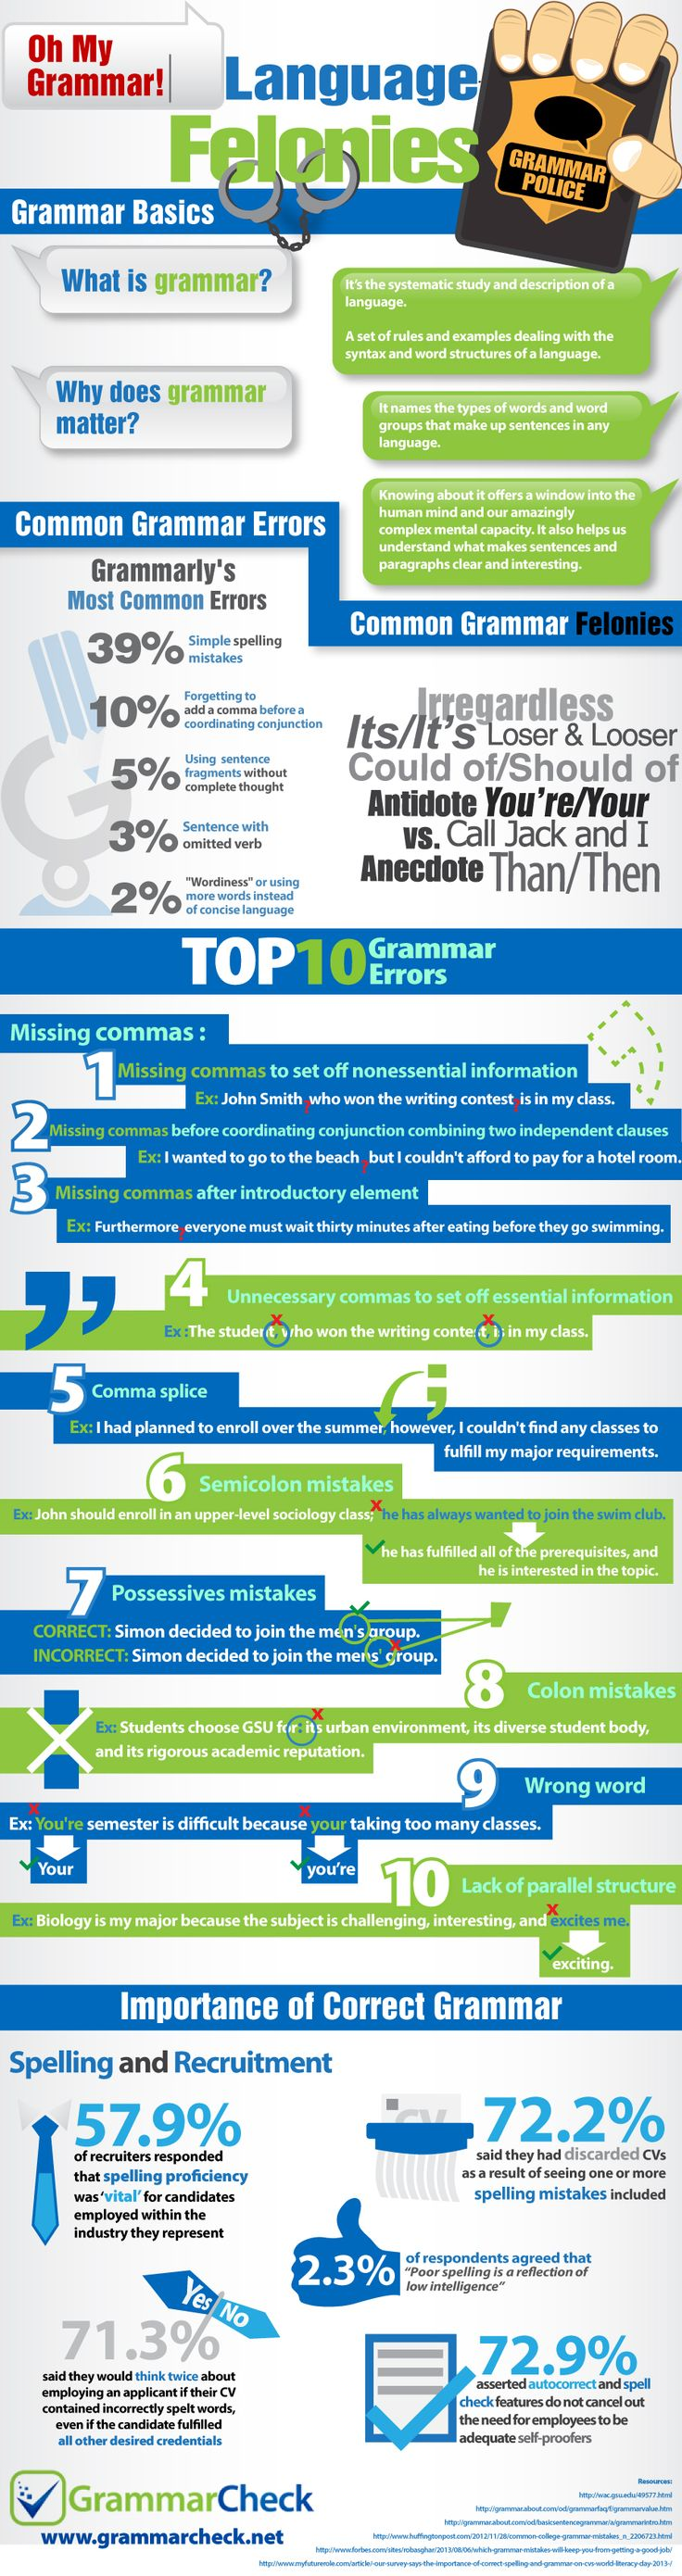 Top 10 Grammar Errors To Avoid in Your Resume (Infographic by grammarcheck.net)